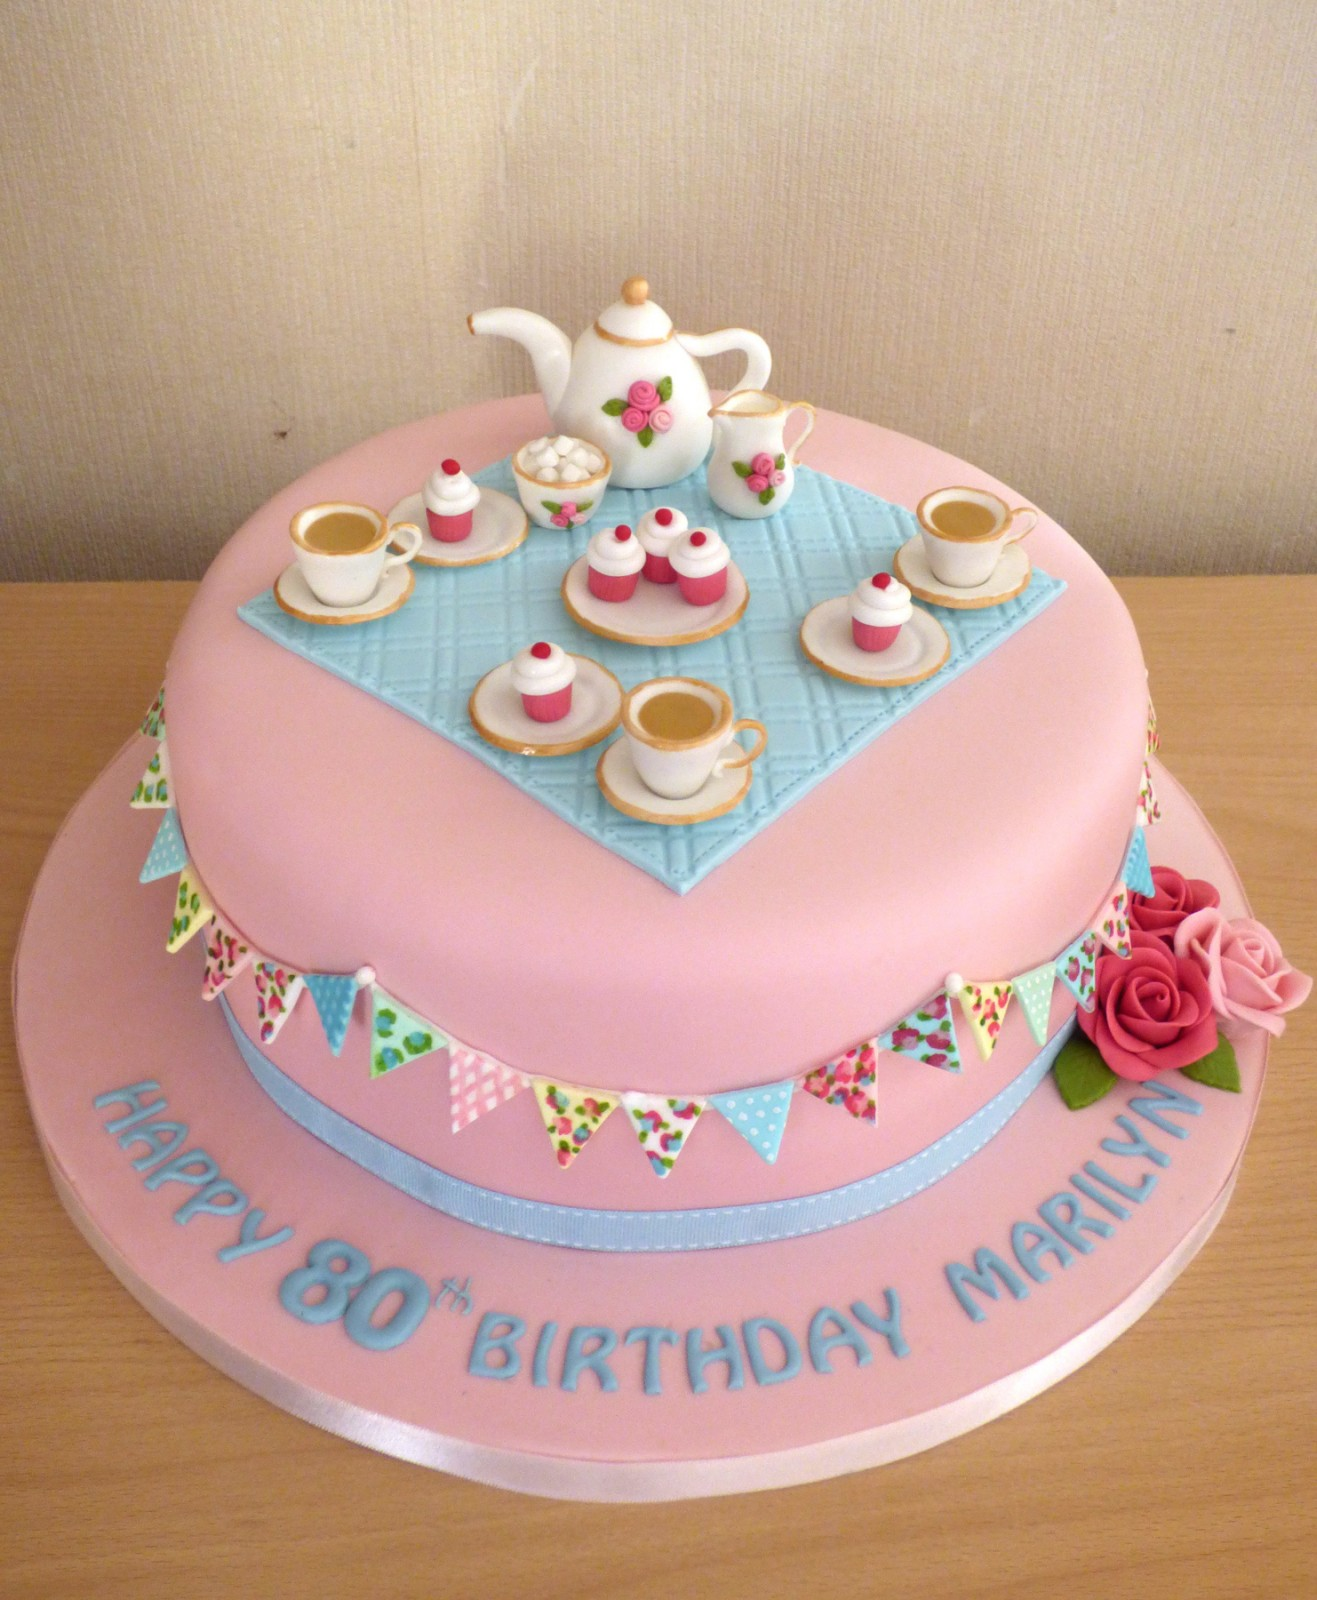 Vintage Tea Party Birthday Cake